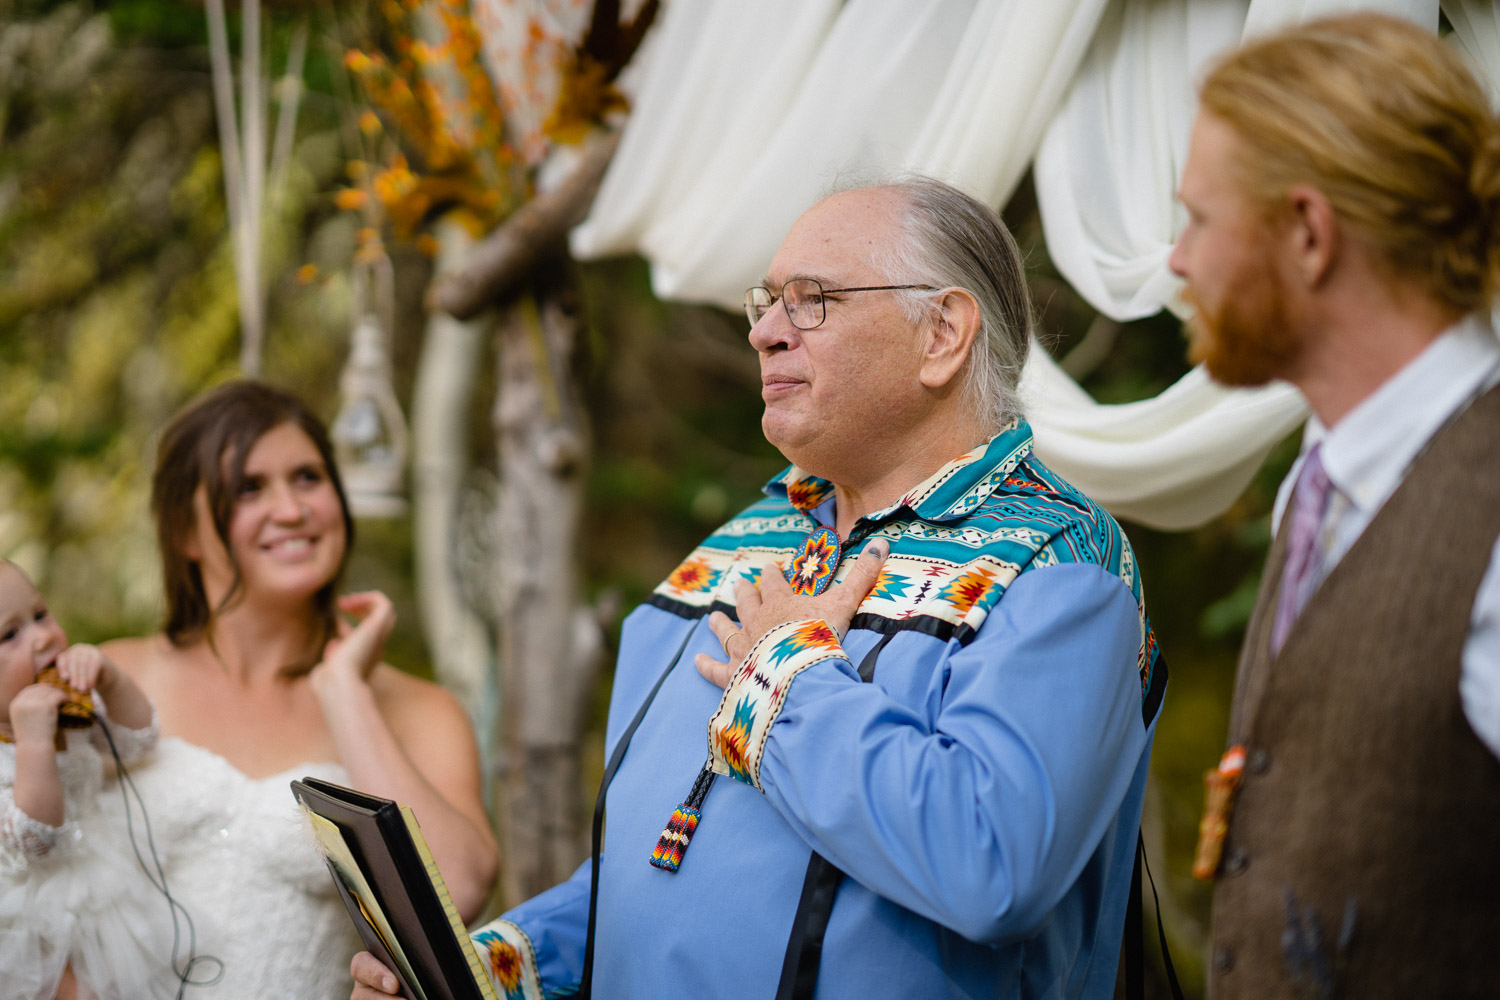 officiant hand over heart with bride and groom outdoor altar